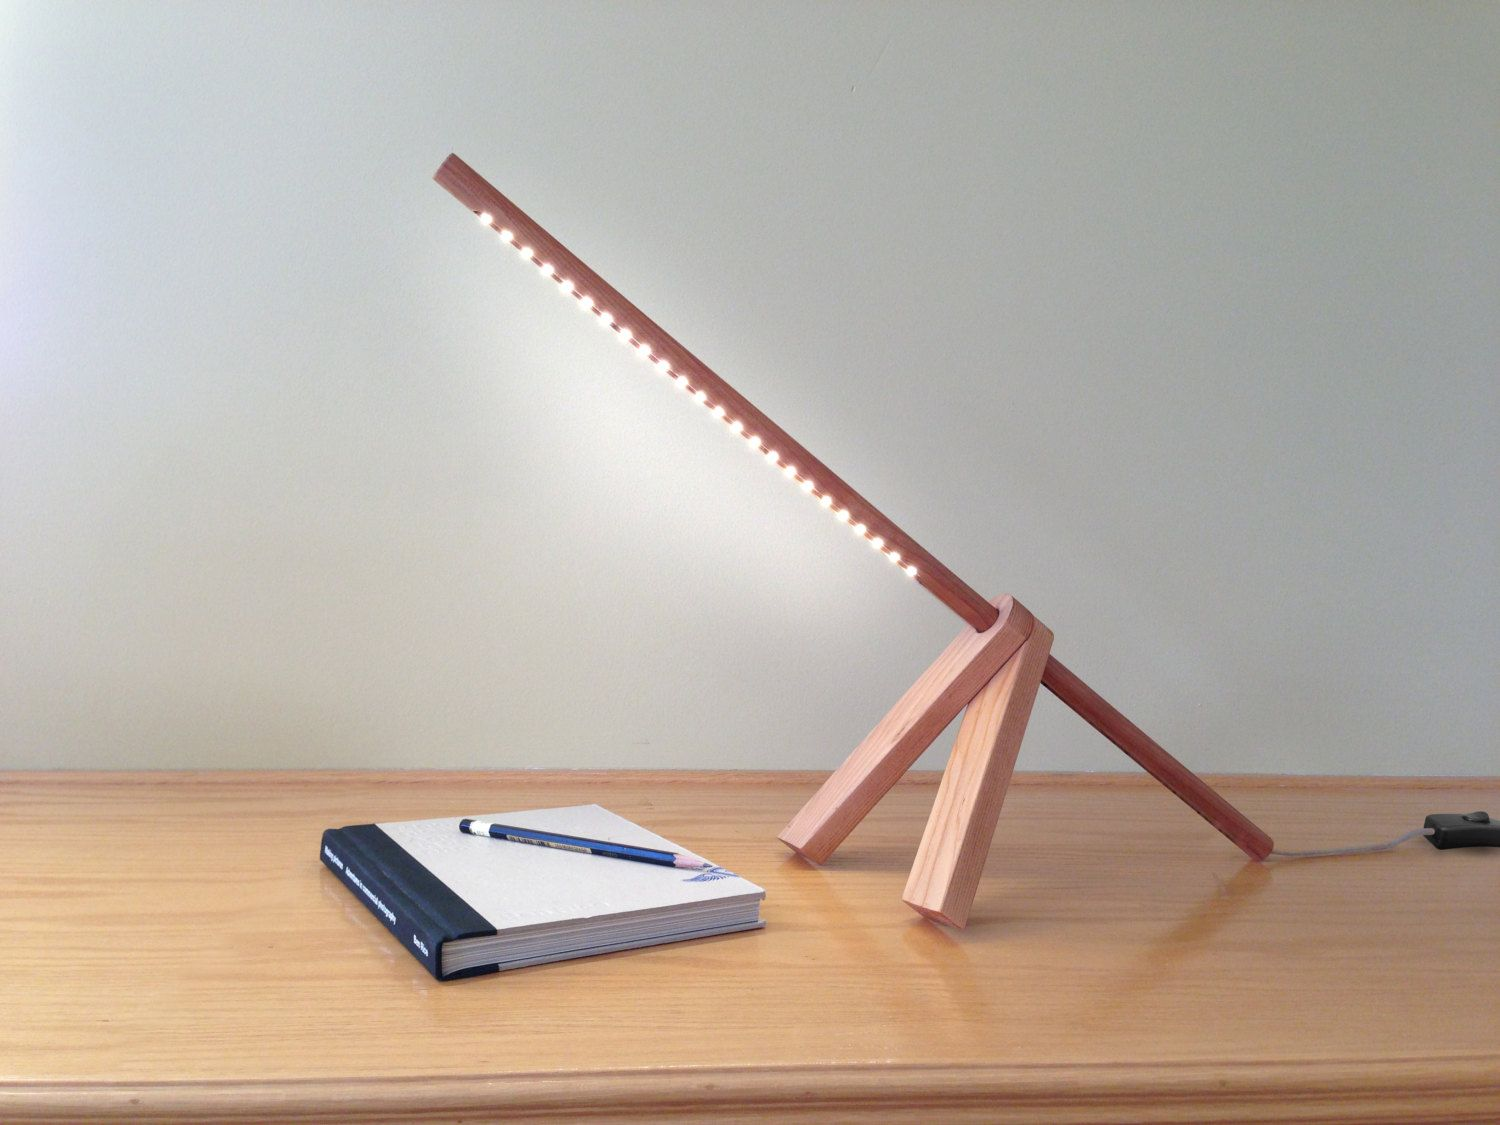 best lamparas images on pinterest  desk lamp lamp design and  - modern desk lamp on sale alamp modern  minimal led table lamp led lampwood lamp handmade modern lamp modern lamp table lamp